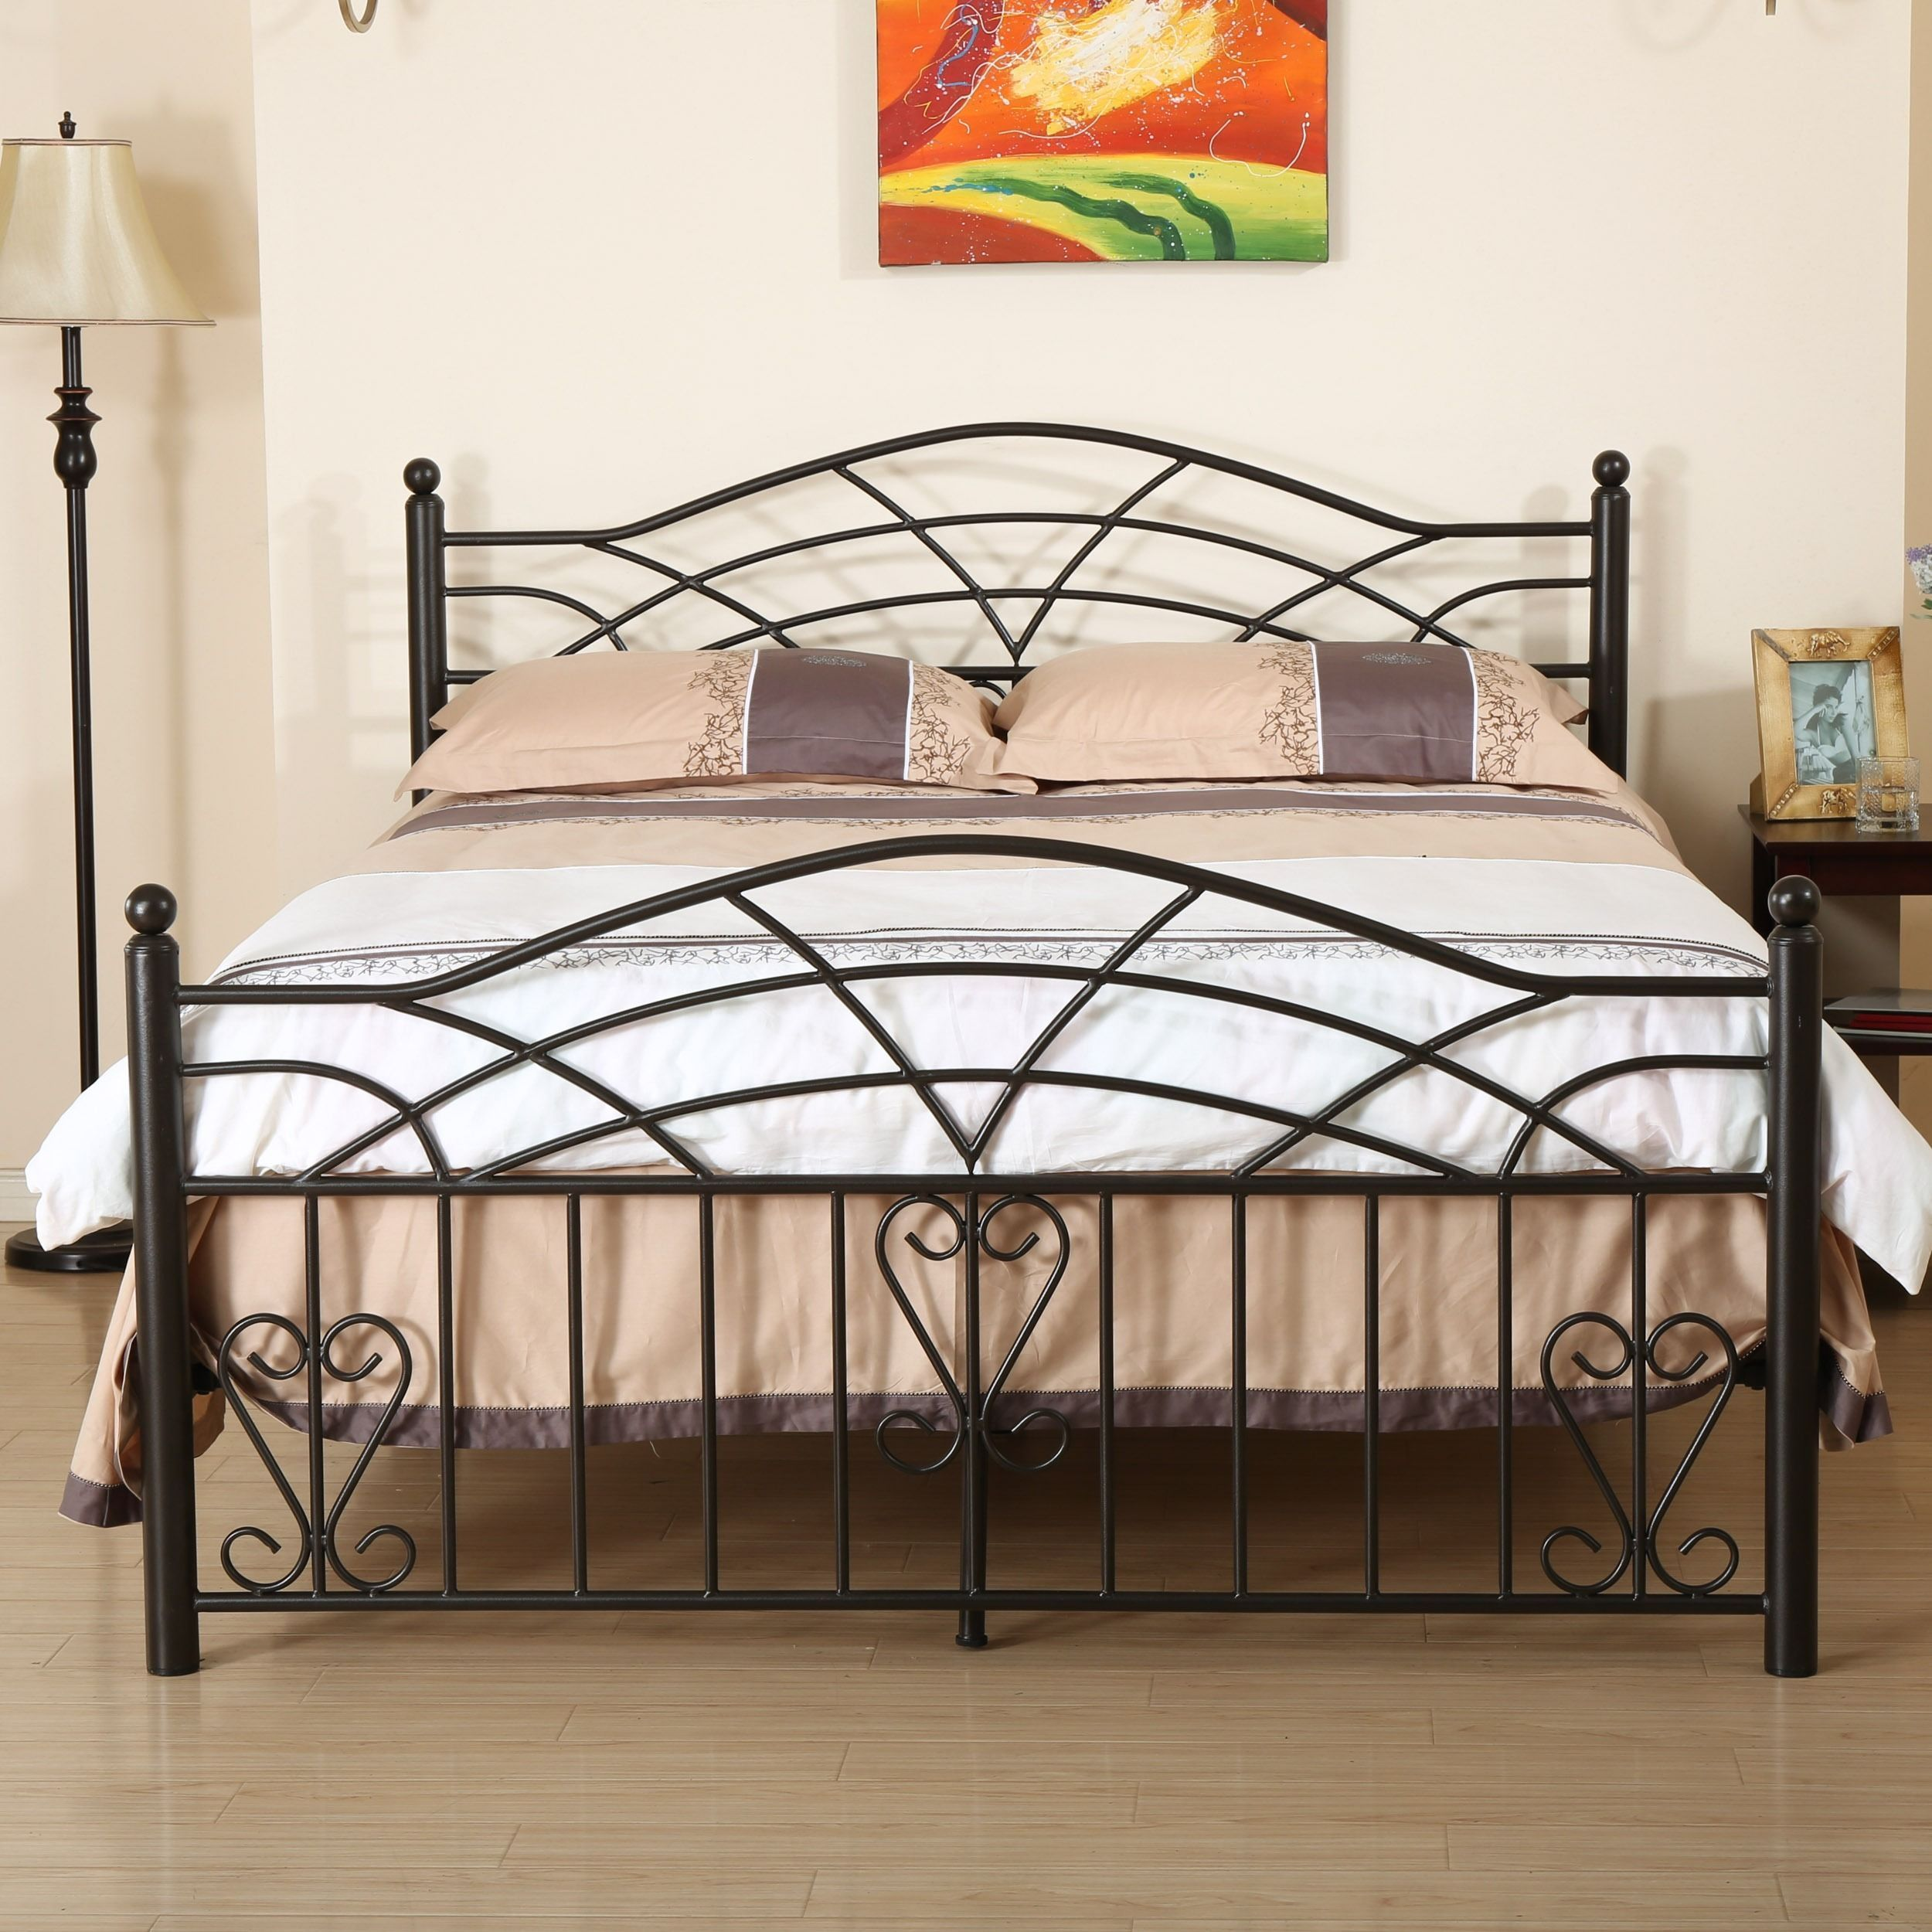 Overstock Com Online Shopping Bedding Furniture Electronics Jewelry Clothing More Iron Bed Frame Steel Bed Design Iron Bed